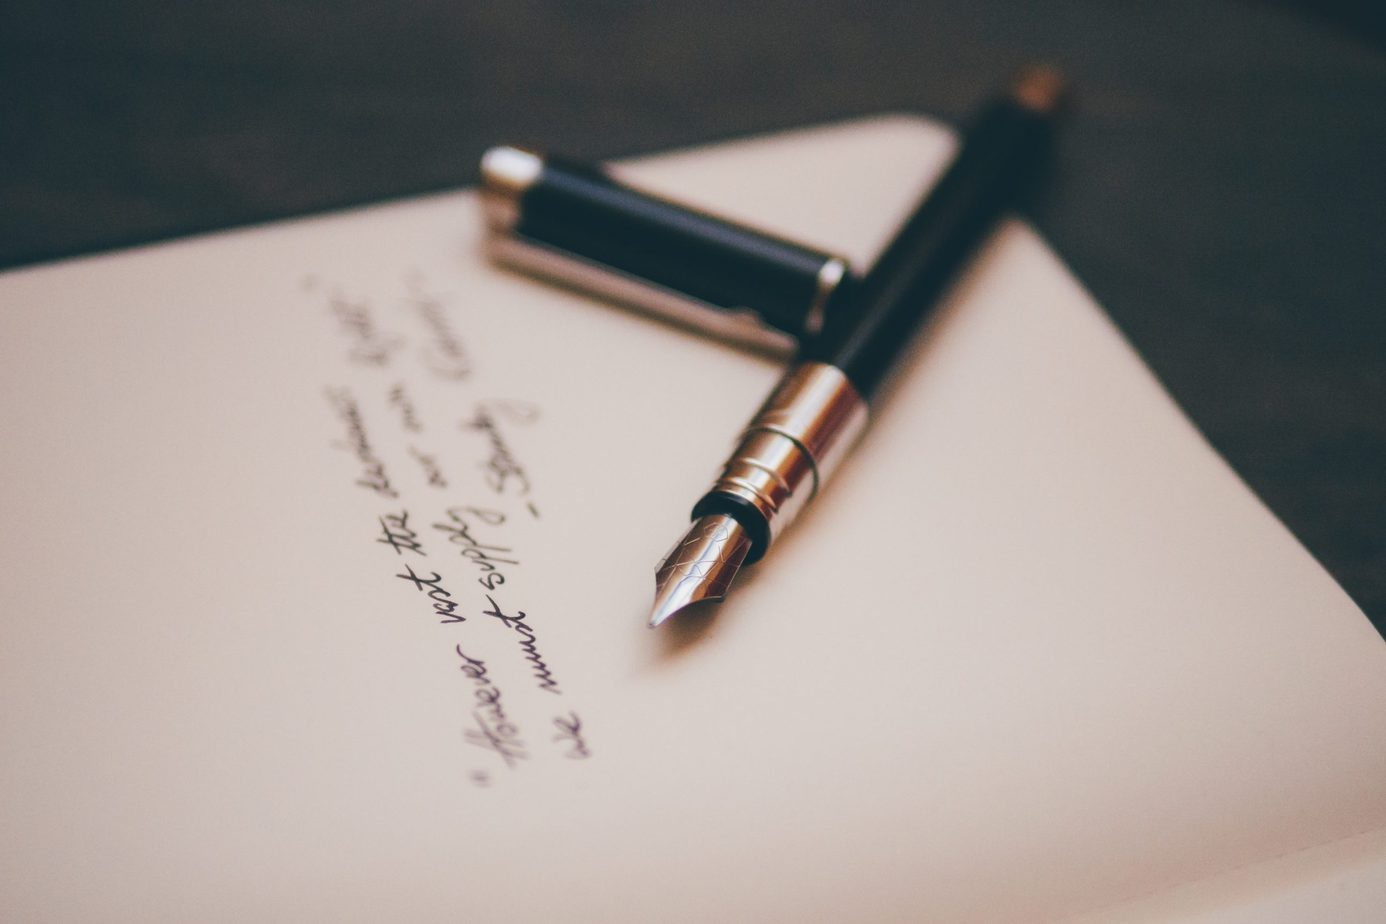 How to Write a Condolence Message that Heals